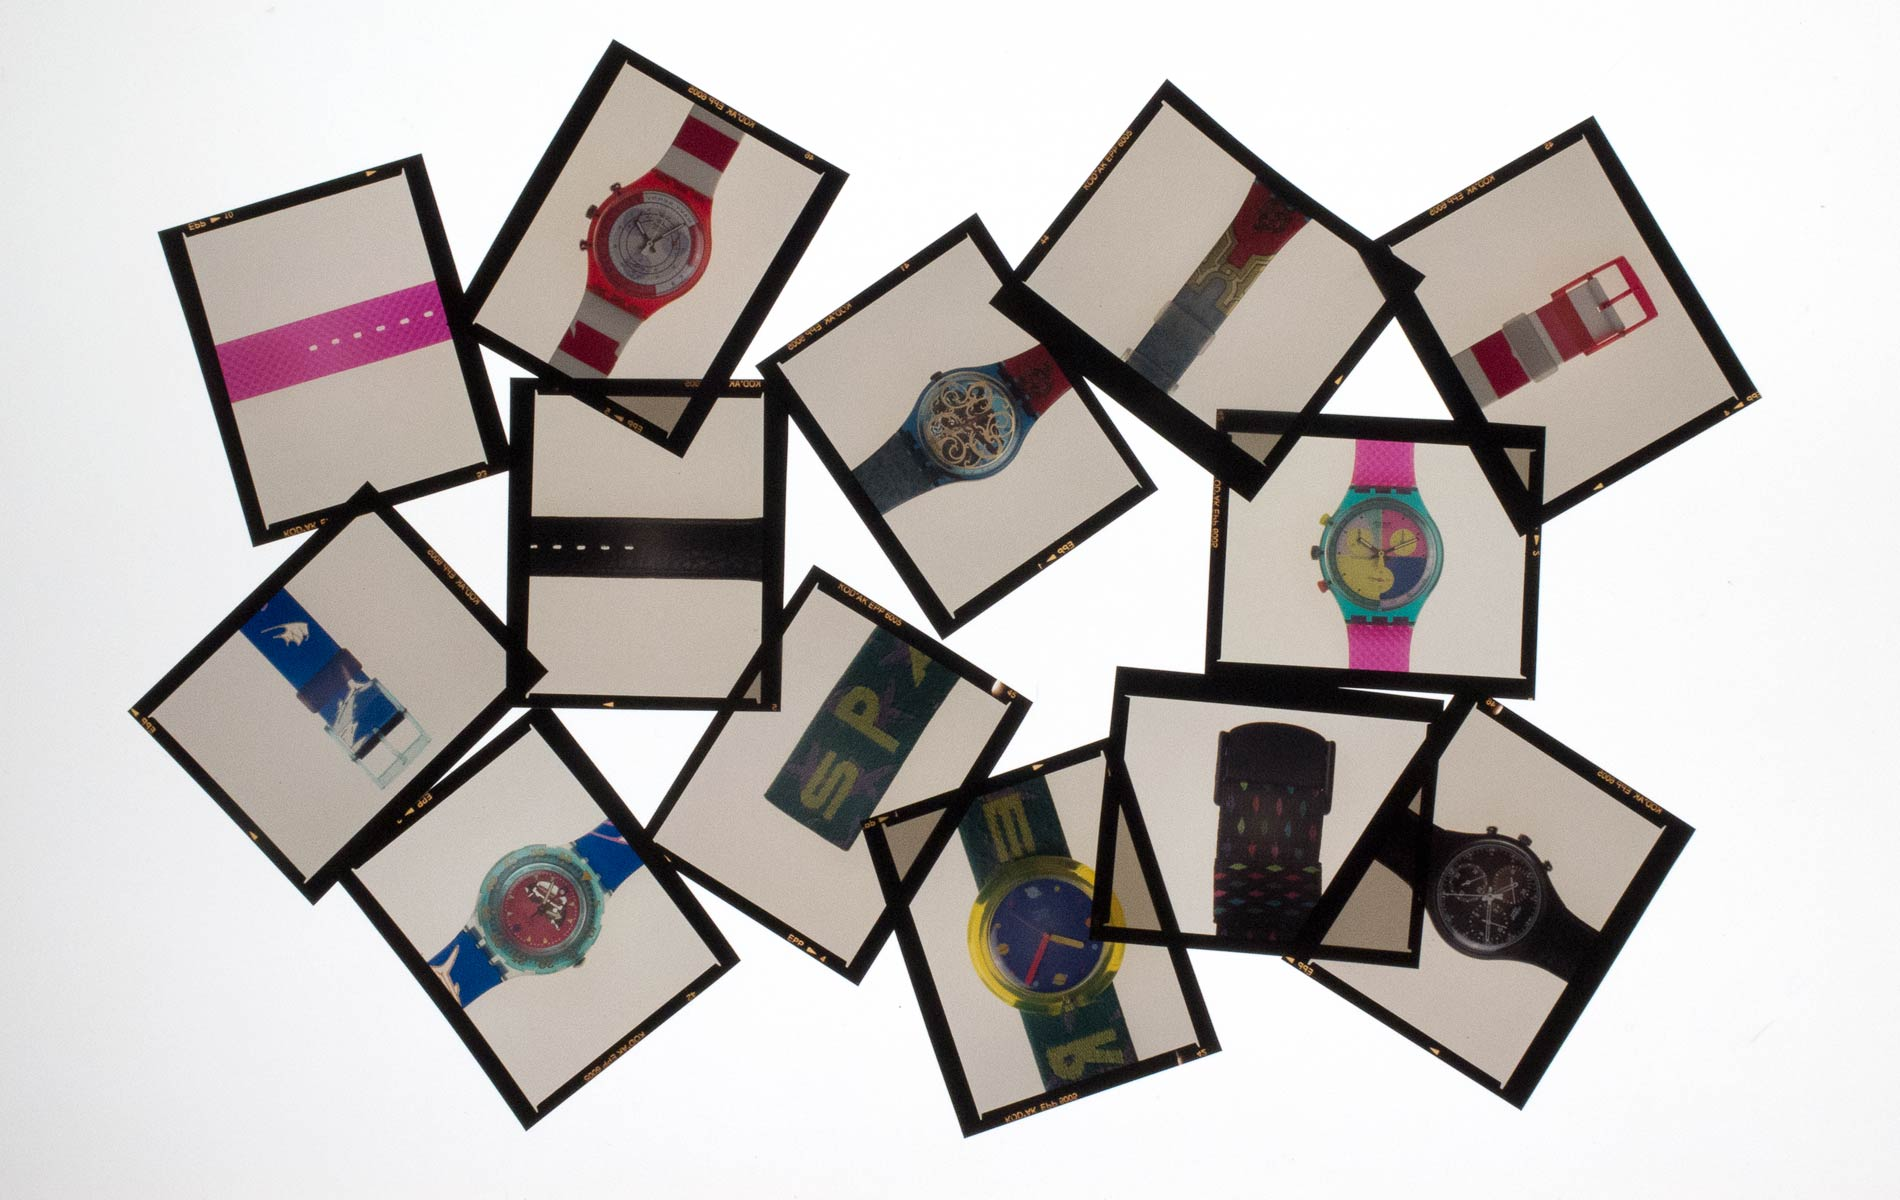 SWATCH PUZZLE Collection -  selection of color slides to dial the name - 120 size - © Graziano Villa